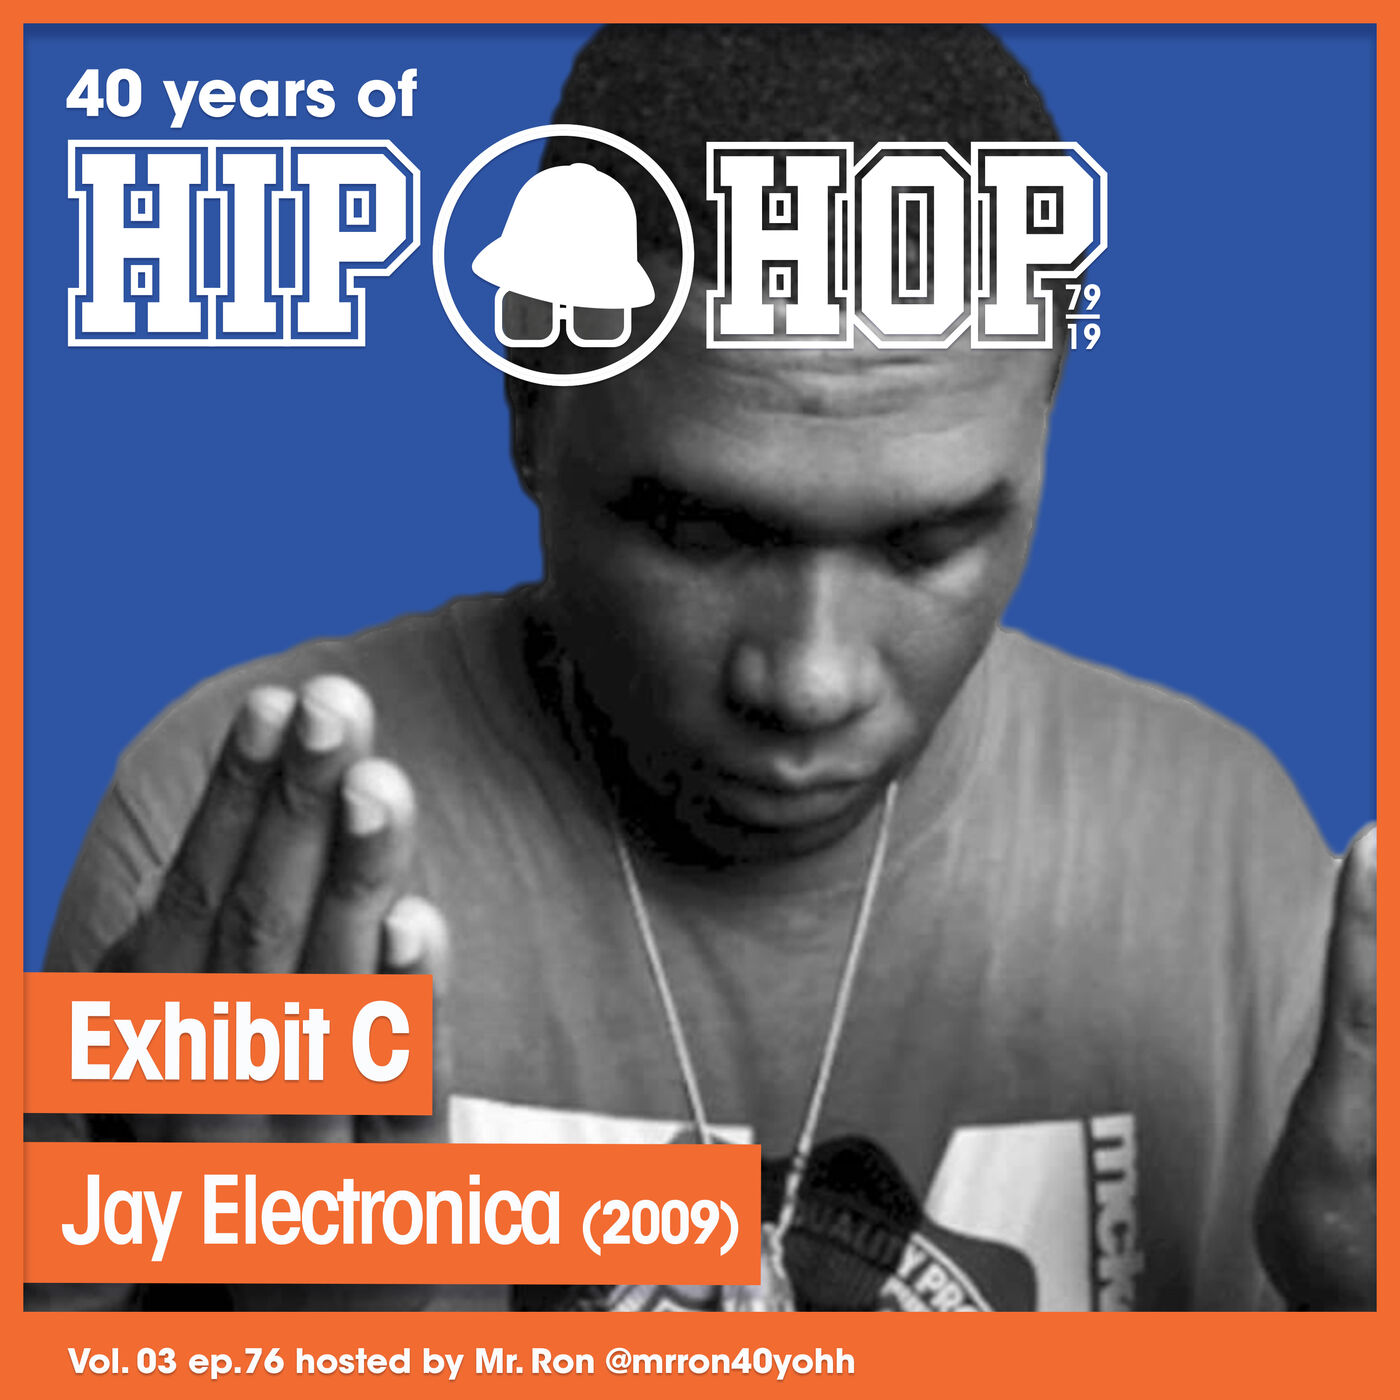 Vol.03 E76 - Exhibit C by Jay Electronica released in 2009 - 40 Years of Hip Hop